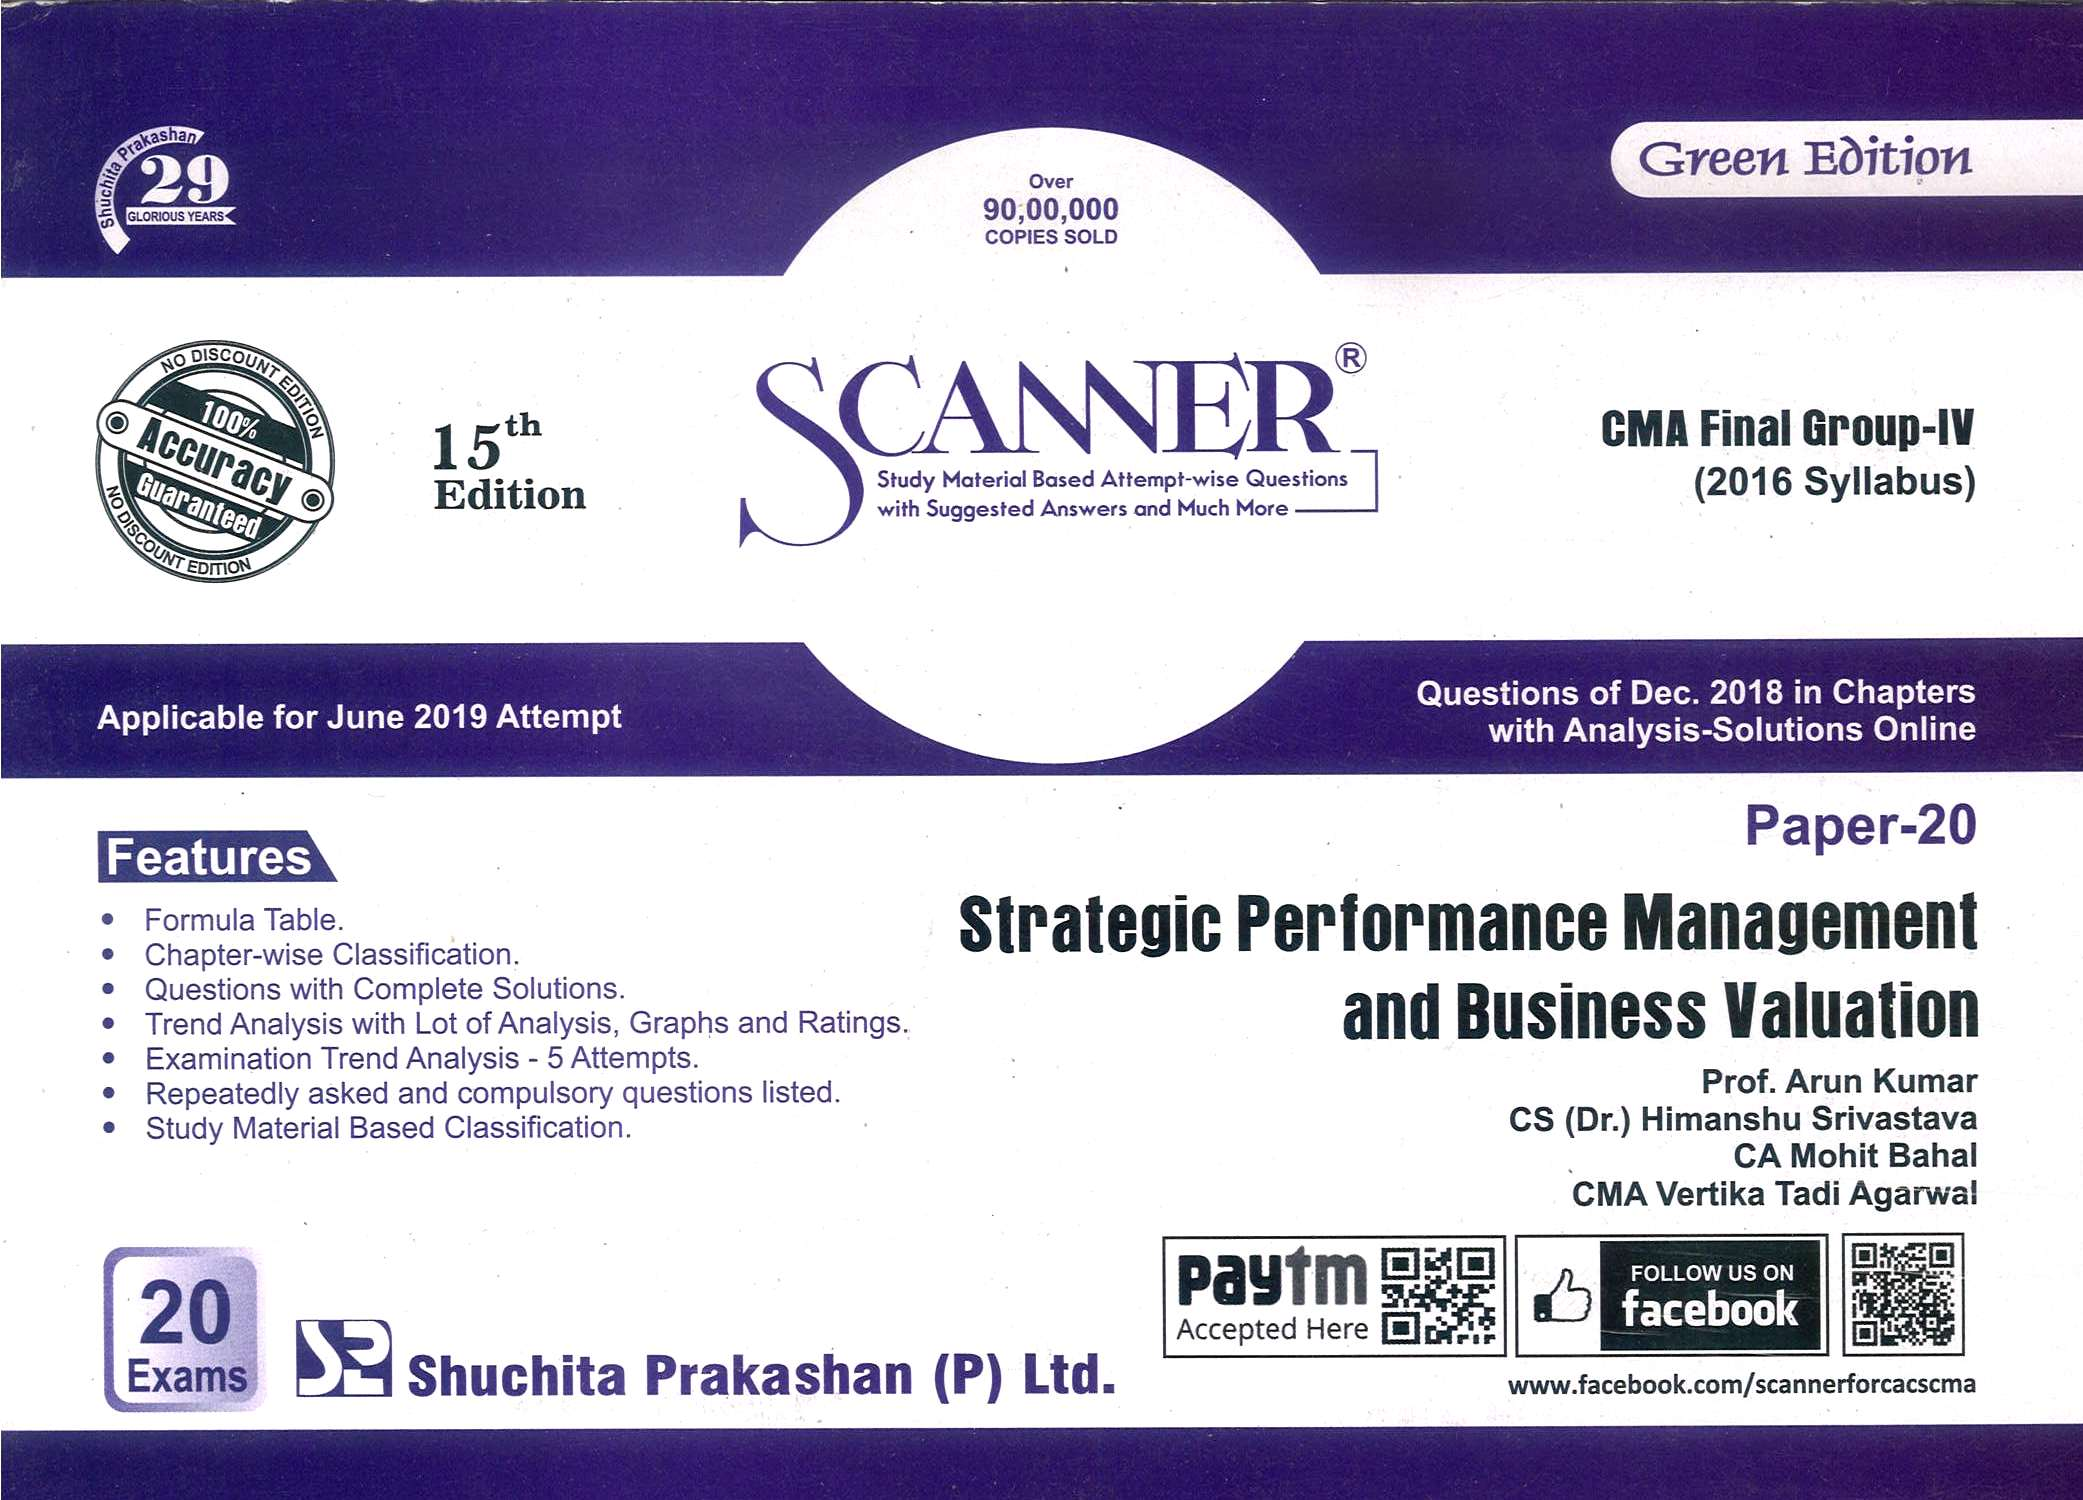 Shuchita Solved Scanner Strategic Performance Management and Business Valuation for CMA Final Group IV Paper 20 New Syllabus for June 2019 Exam by Prof. Arun Kumar and CA Mohit Bahal (Shuchita Prakashan) Edition 2019